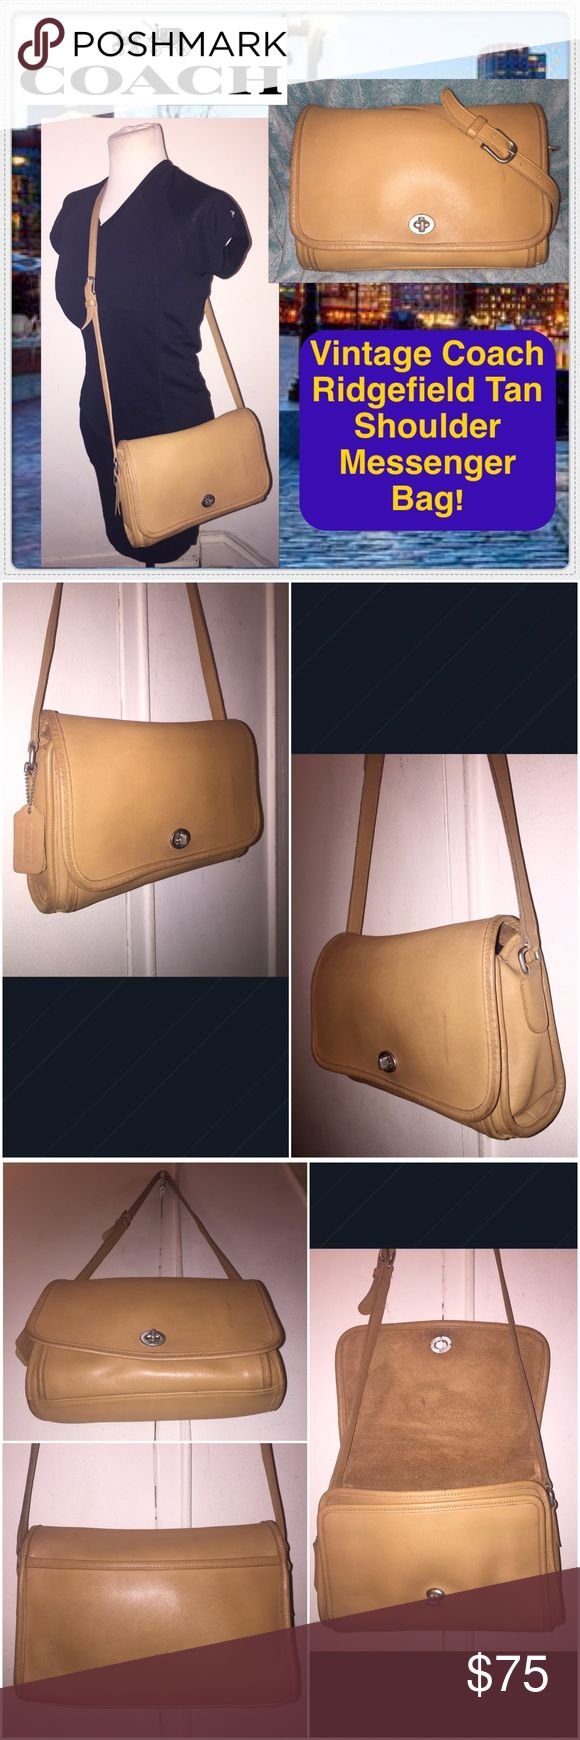 "VTG Coach Ridgefield Tan Shoulder Messenger Bag! Vintage Coach Ridgefield Tan Shoulder Messenger Bag! Features: 100% authentic, glove-tanned Leather, camel tan color, nickel hw, front turn-lock closure, int zip pocket, back slip pocket, front gusseted pocket under front flap & ad shoulder strap. Coach creed & serial no. 9570 on inside. Measures 8"" x 11"" x 4"" & up to 23"" long adj 1"" wide strap. Light ext marks & straitions on the leather which add to nice light distressed look. No rips, tears…"